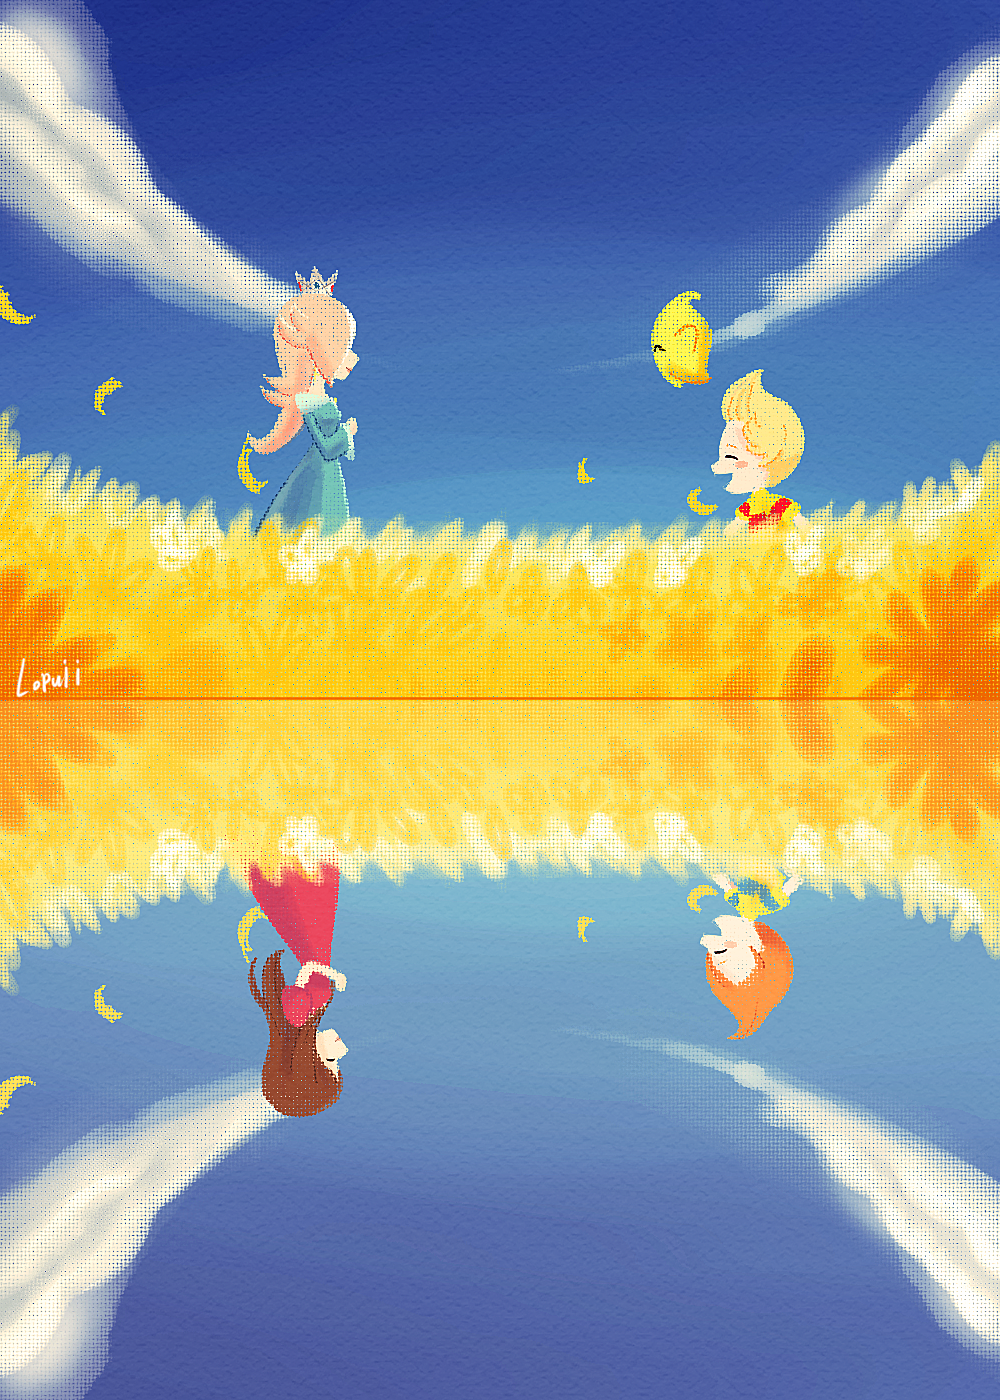 1other 2boys 2girls abstract adult ape_(company) artist_name blonde_hair blue_dress blue_sky brown_hair brownie_brown chiko_(mario) child claus closed_eyes clouds commentary crown deviantart_username dress earthbound english_commentary field flower flower_field hal_laboratory_inc. happy highres hinawa kid long_hair lopuii lucas luma mario_(series) mother_(game) mother_3 mother_and_son motherly multiple_boys multiple_girls multiple_views nintendo nintendo_ead open_mouth orange_hair petals princess red_dress rosalina signature sky smile sora_(company) star sunflower sunflower_petals super_mario_galaxy super_smash_bros. super_smash_bros._ultimate super_smash_bros_brawl super_smash_bros_for_wii_u_and_3ds upside-down watermark